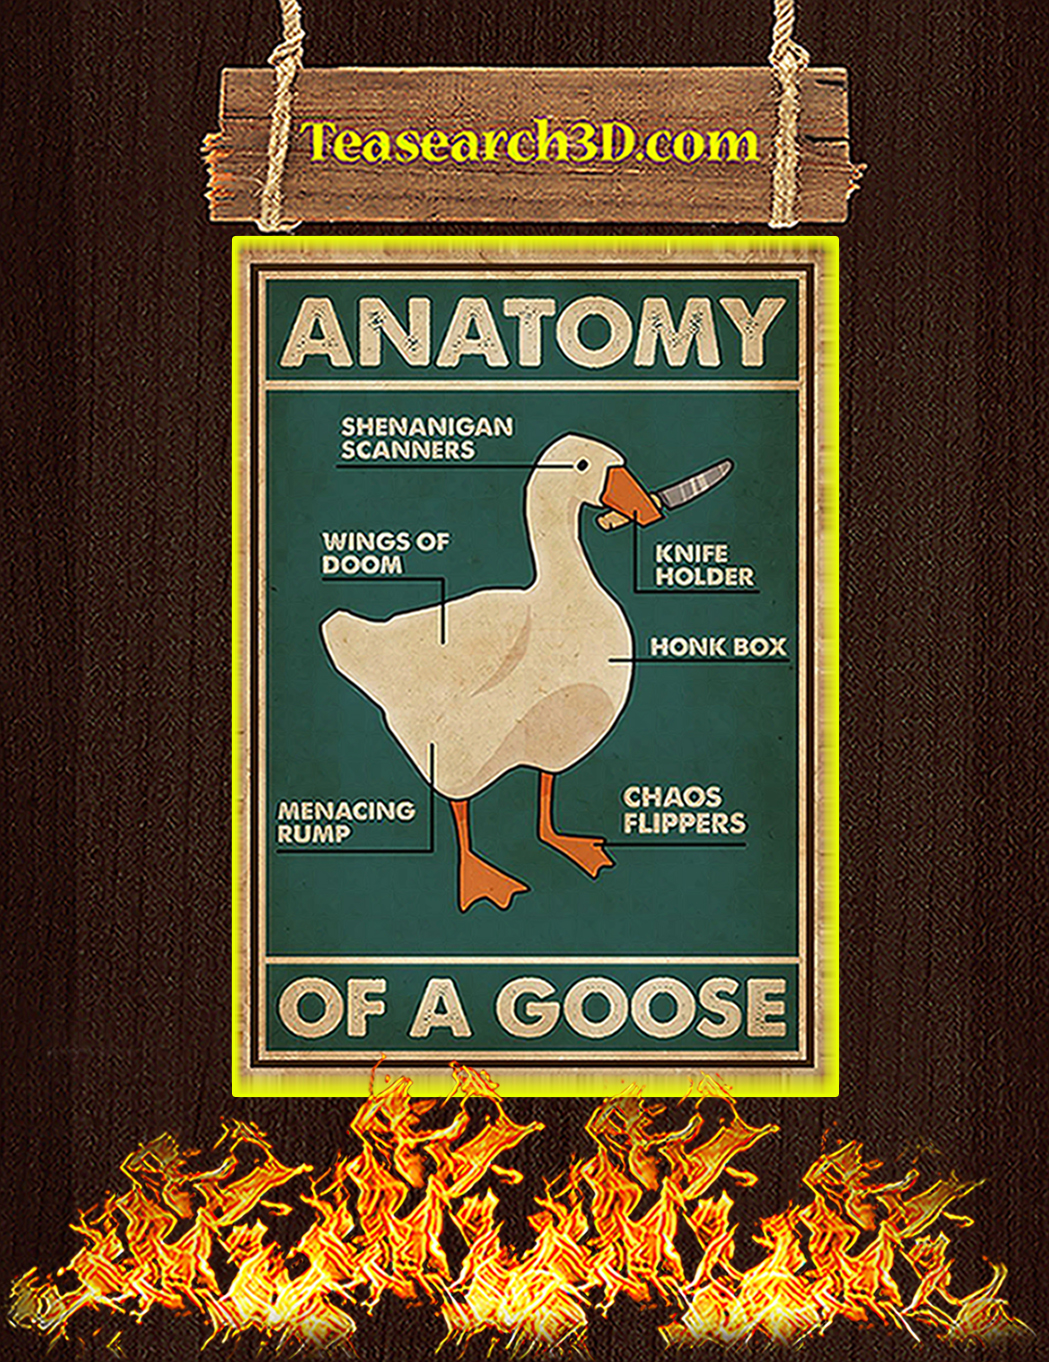 Anatomy of a goose poster A1